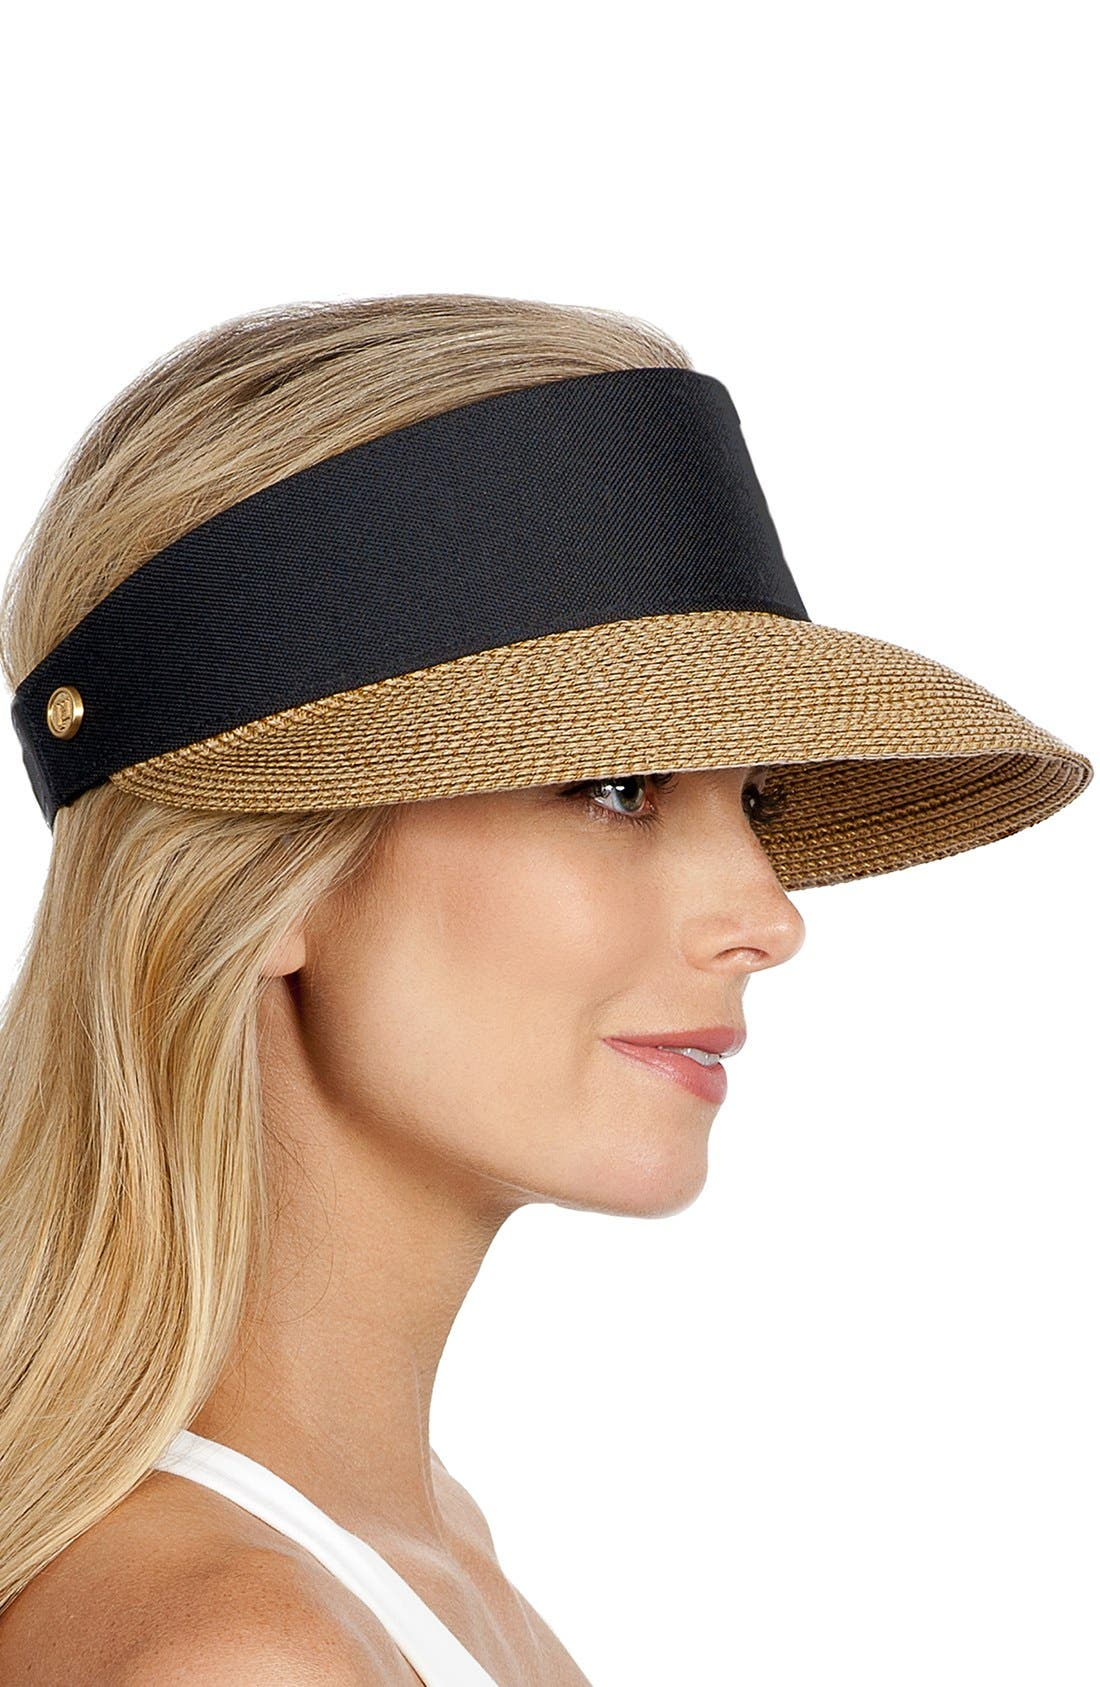 5908a023cbbe2 Women s Sun   Straw Hats